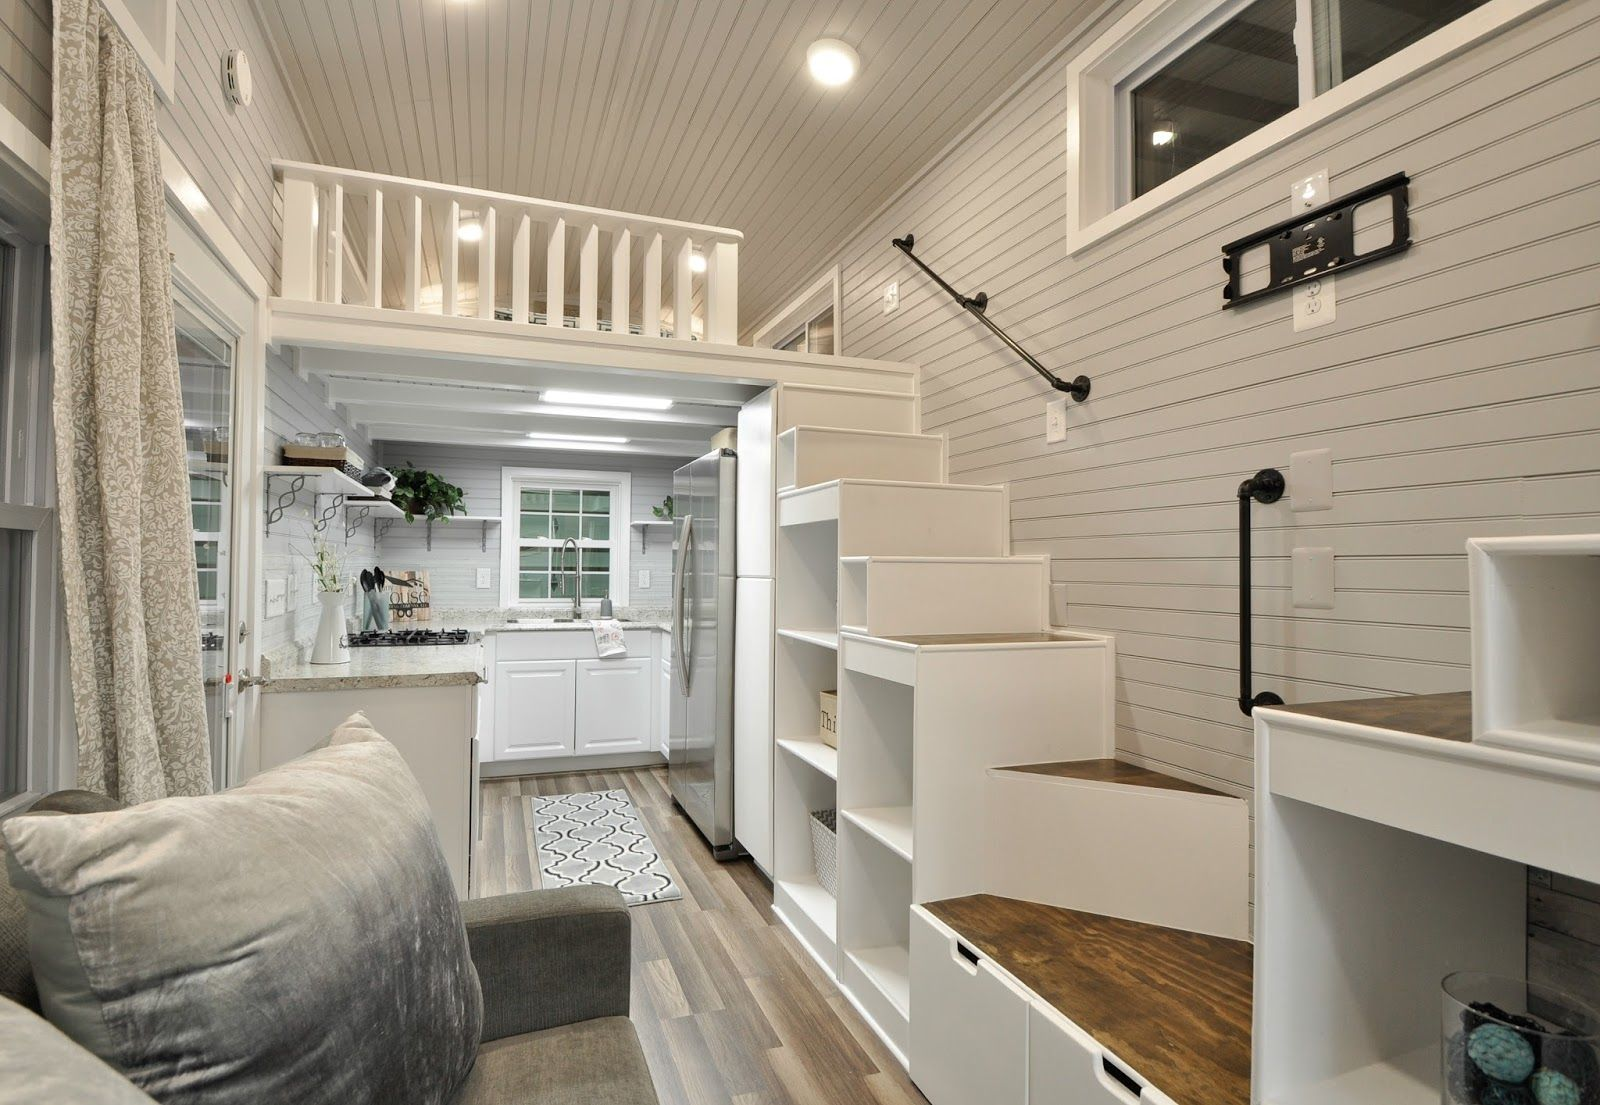 A Gorgeous Luxury Tiny House With Two Bedrooms And A